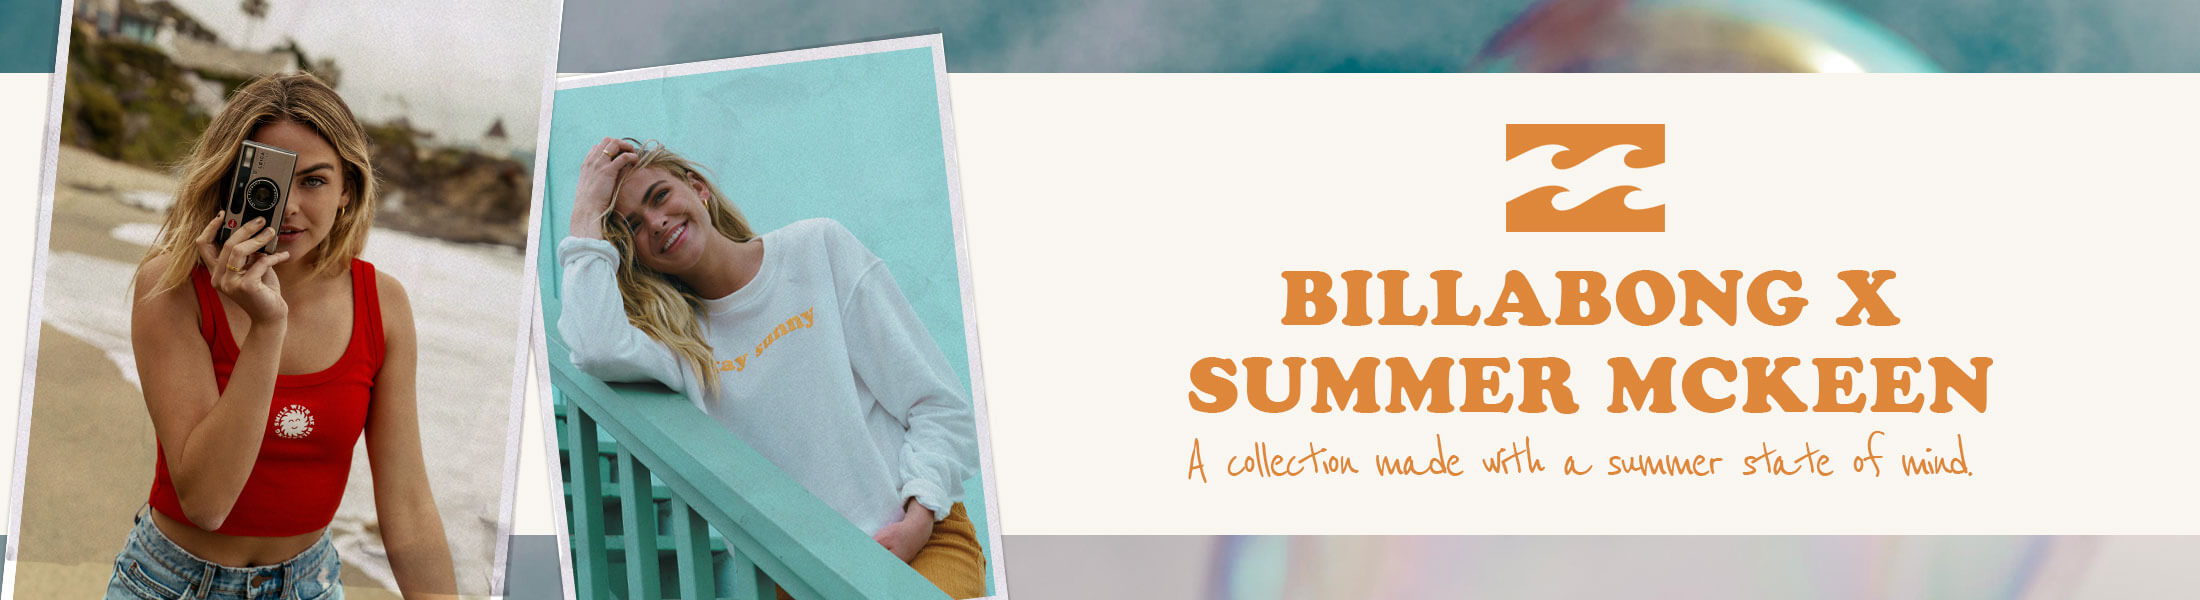 Billabong X Summer McKeen - A collection made with a summer state of mind